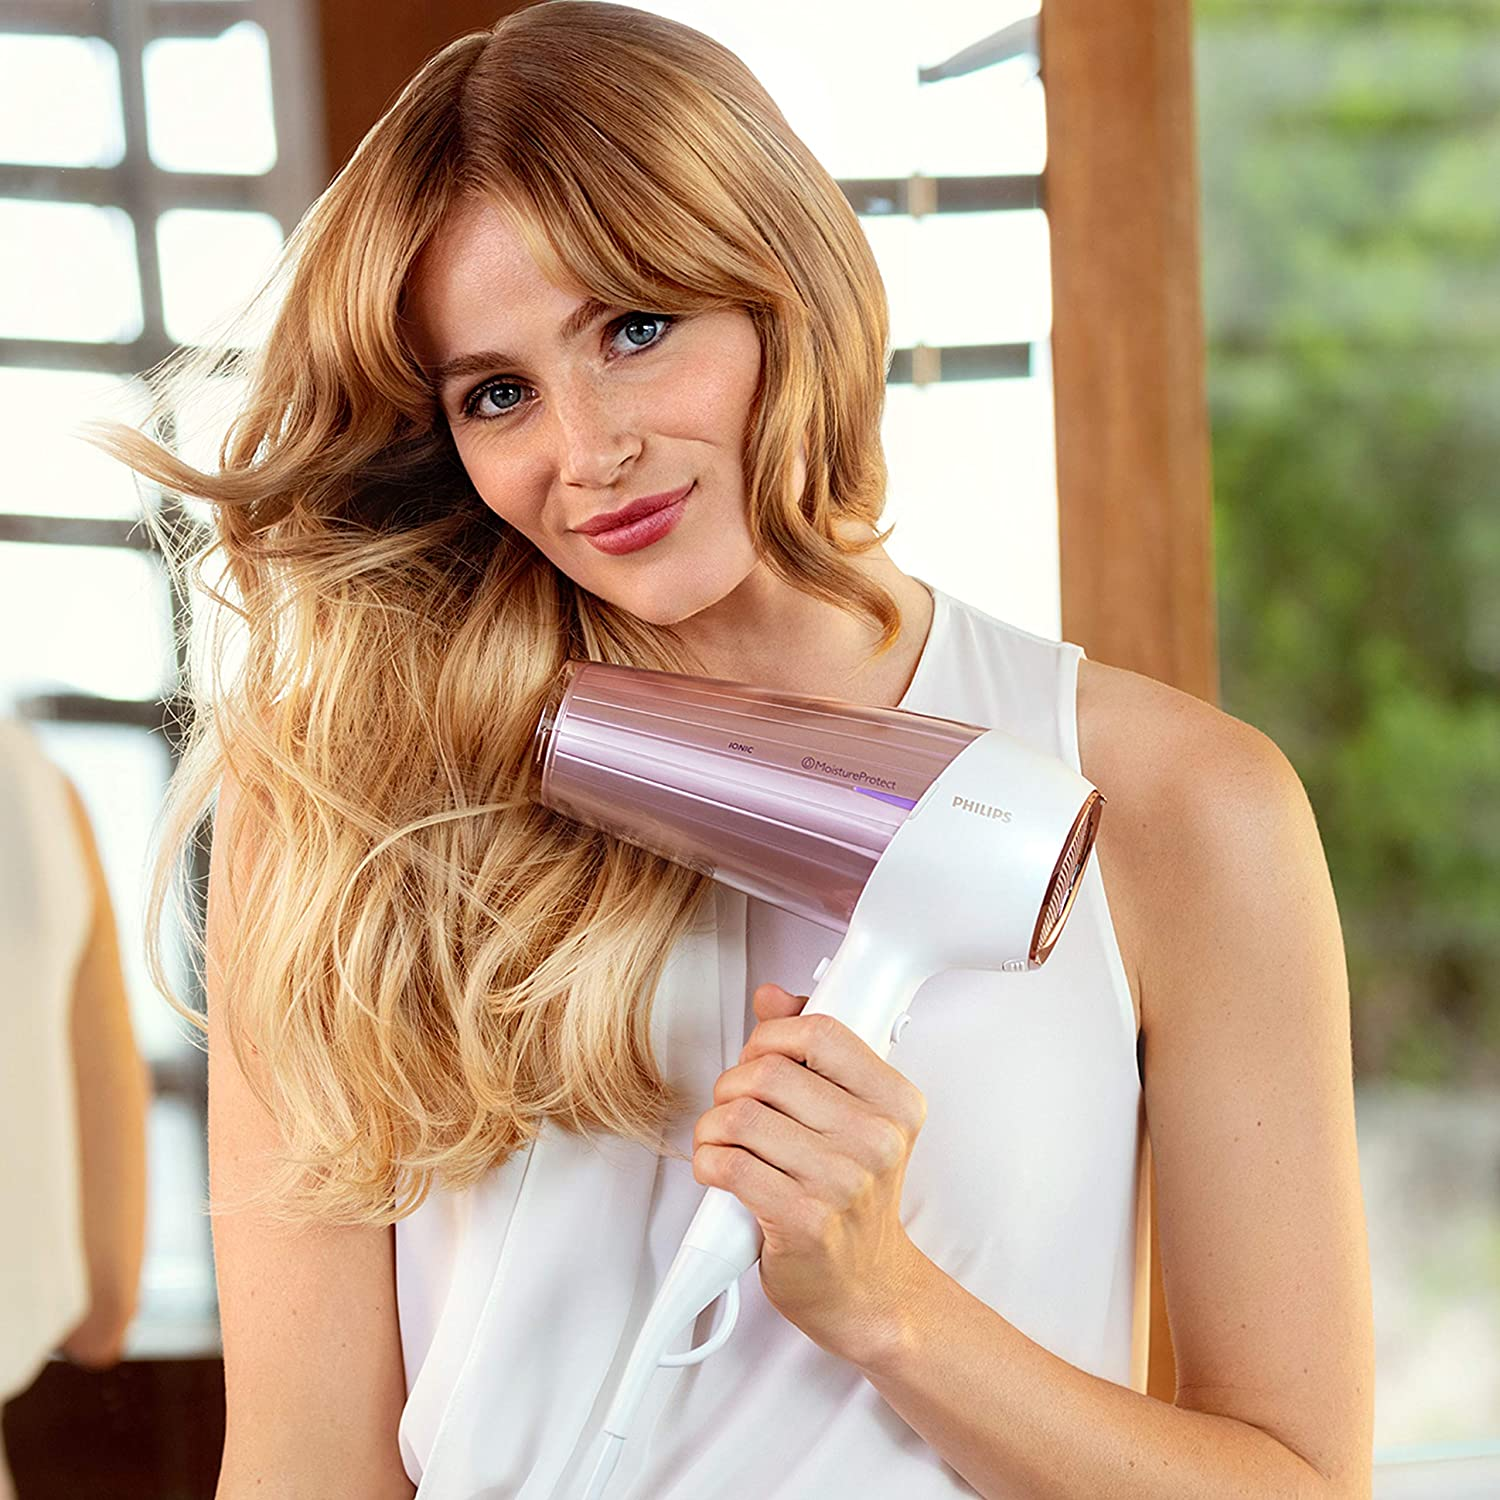 Philips Moisture Protect – Good blow dryer for natural hair